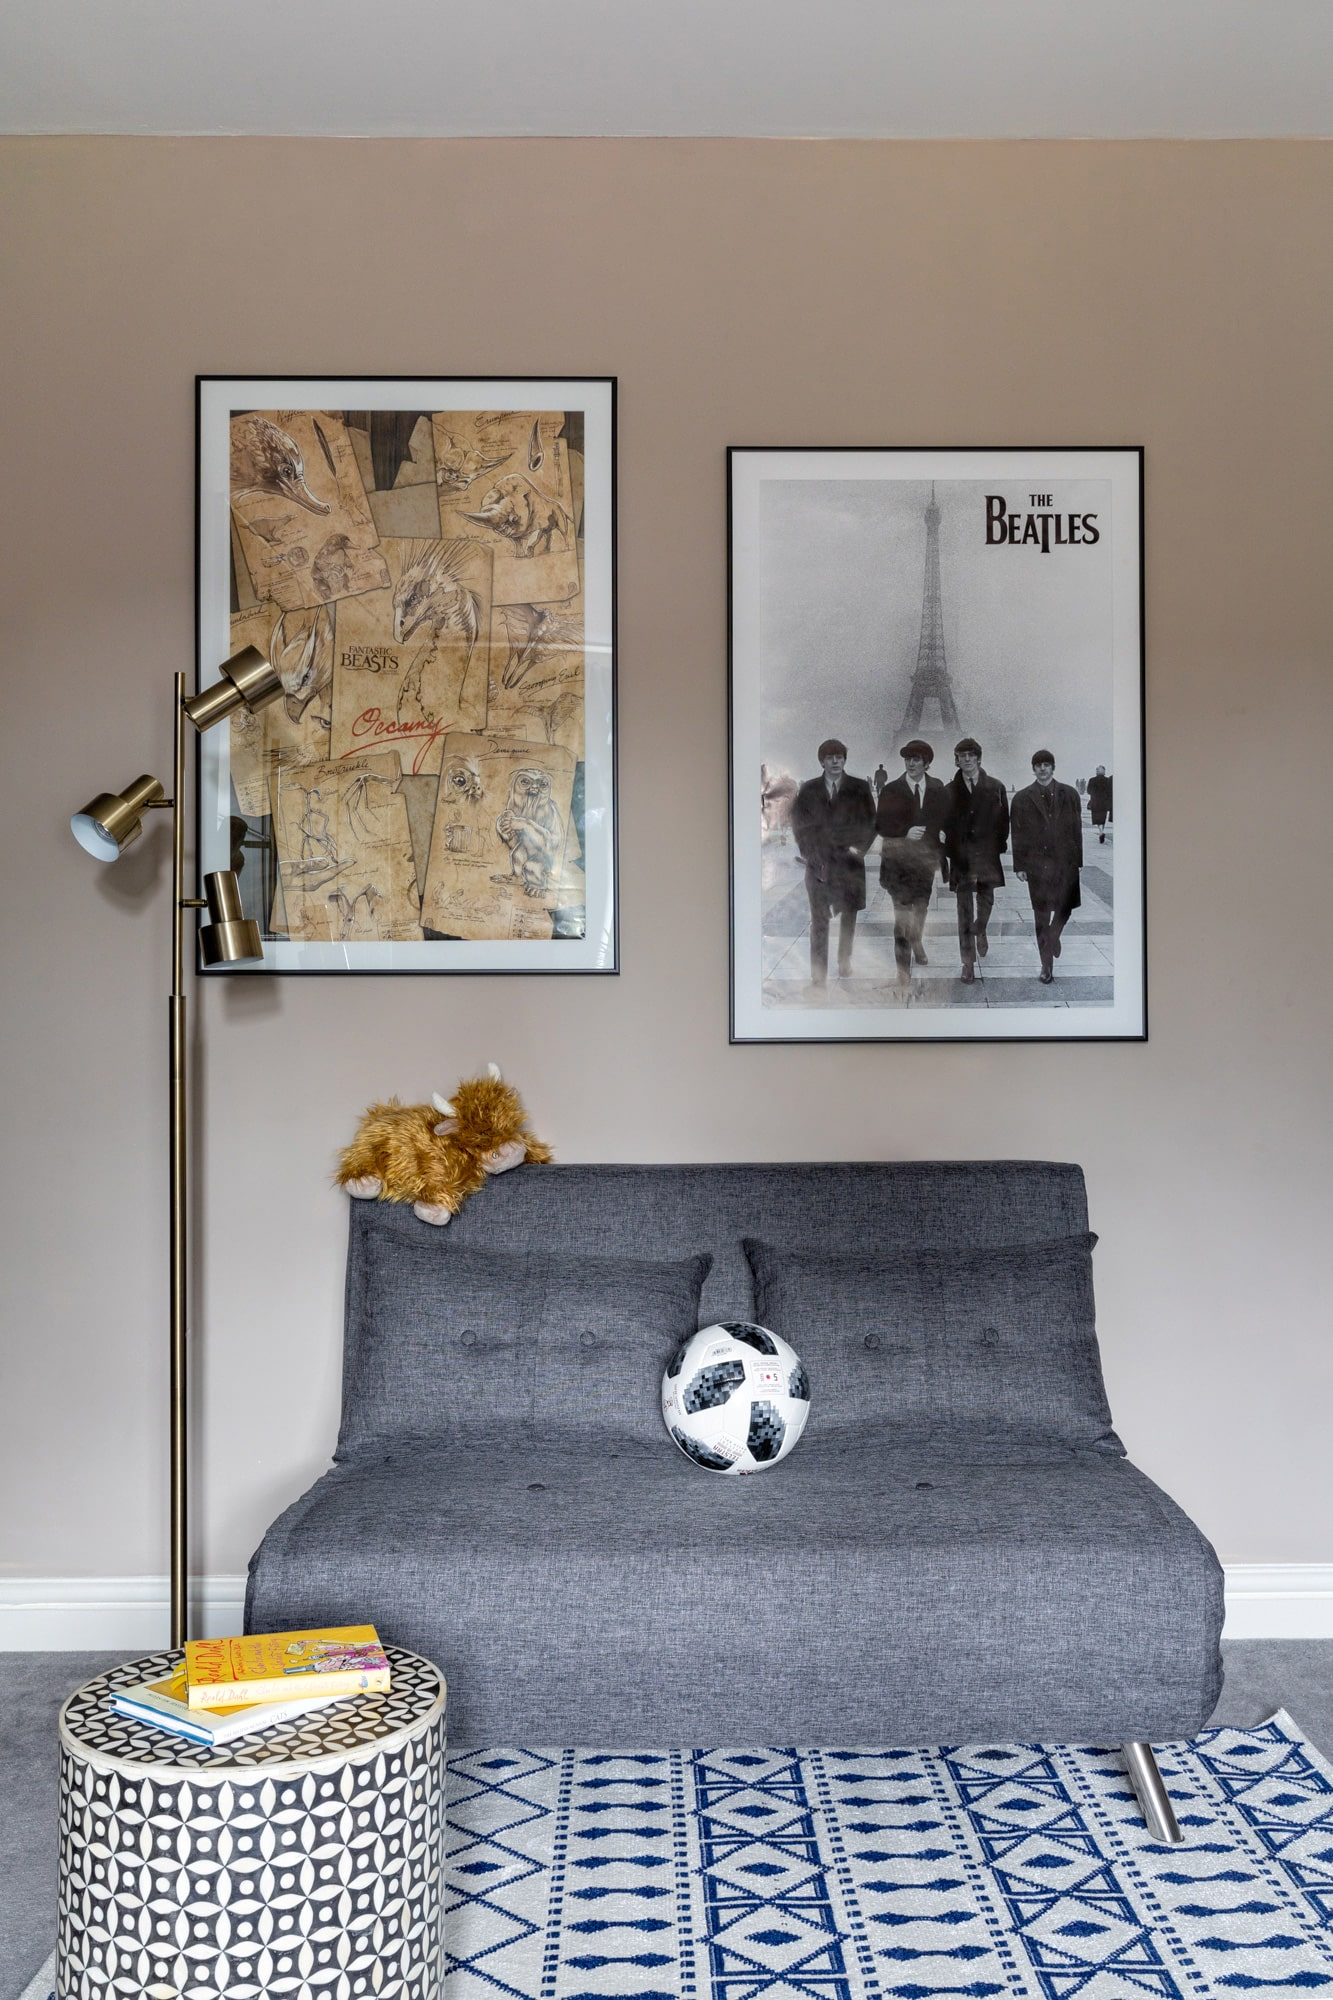 detail interior photo of a kids room: a small grey sofa; Beatles poster and a map on the wall